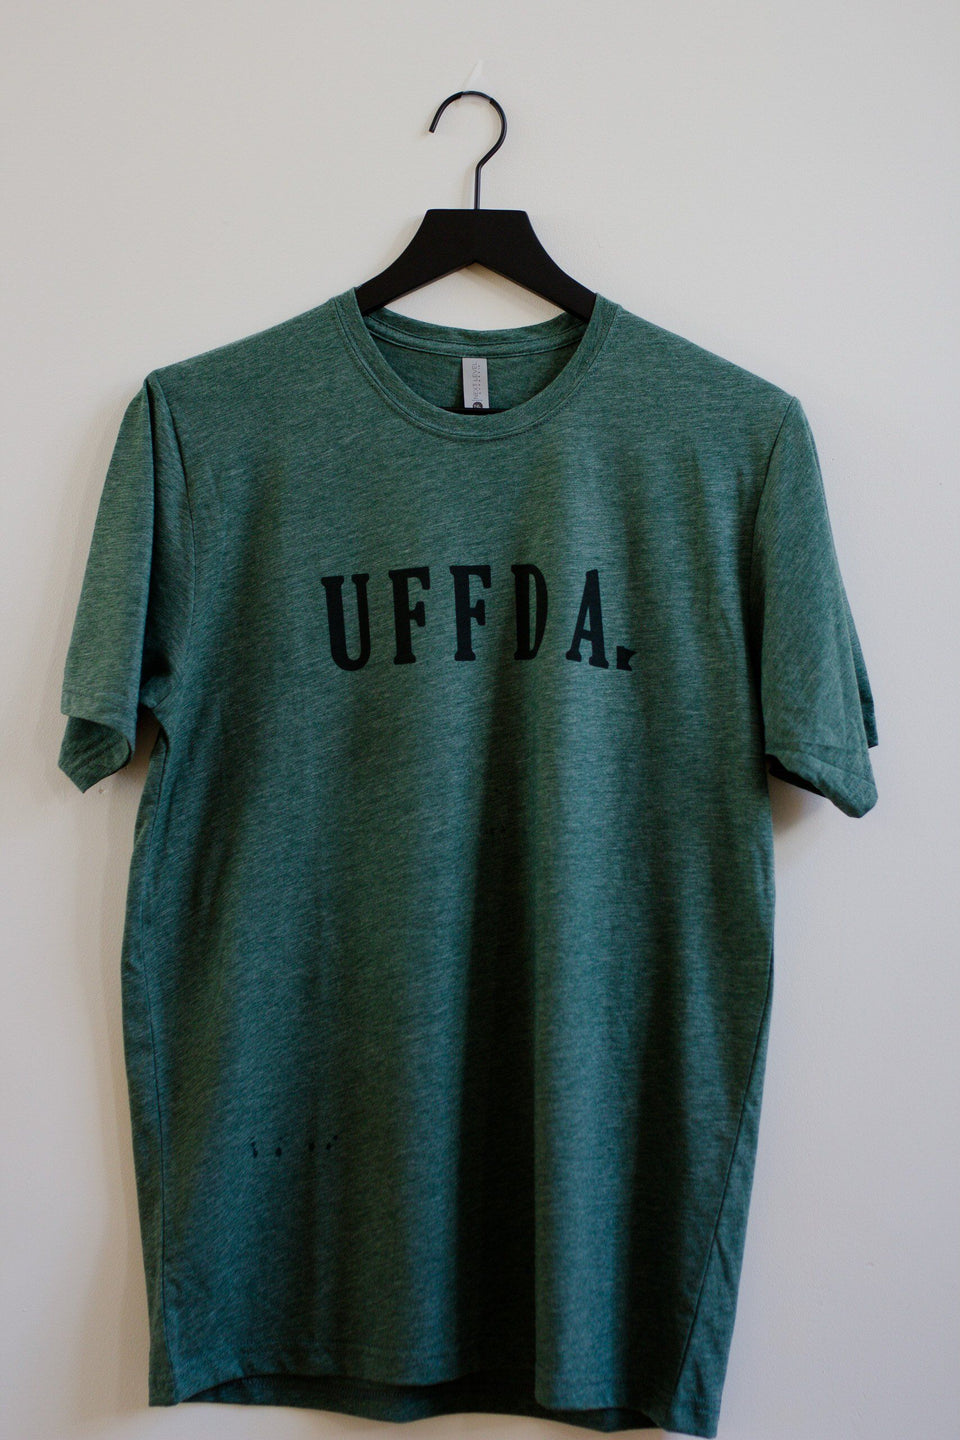 """Uffda""- t-shirt (green)"